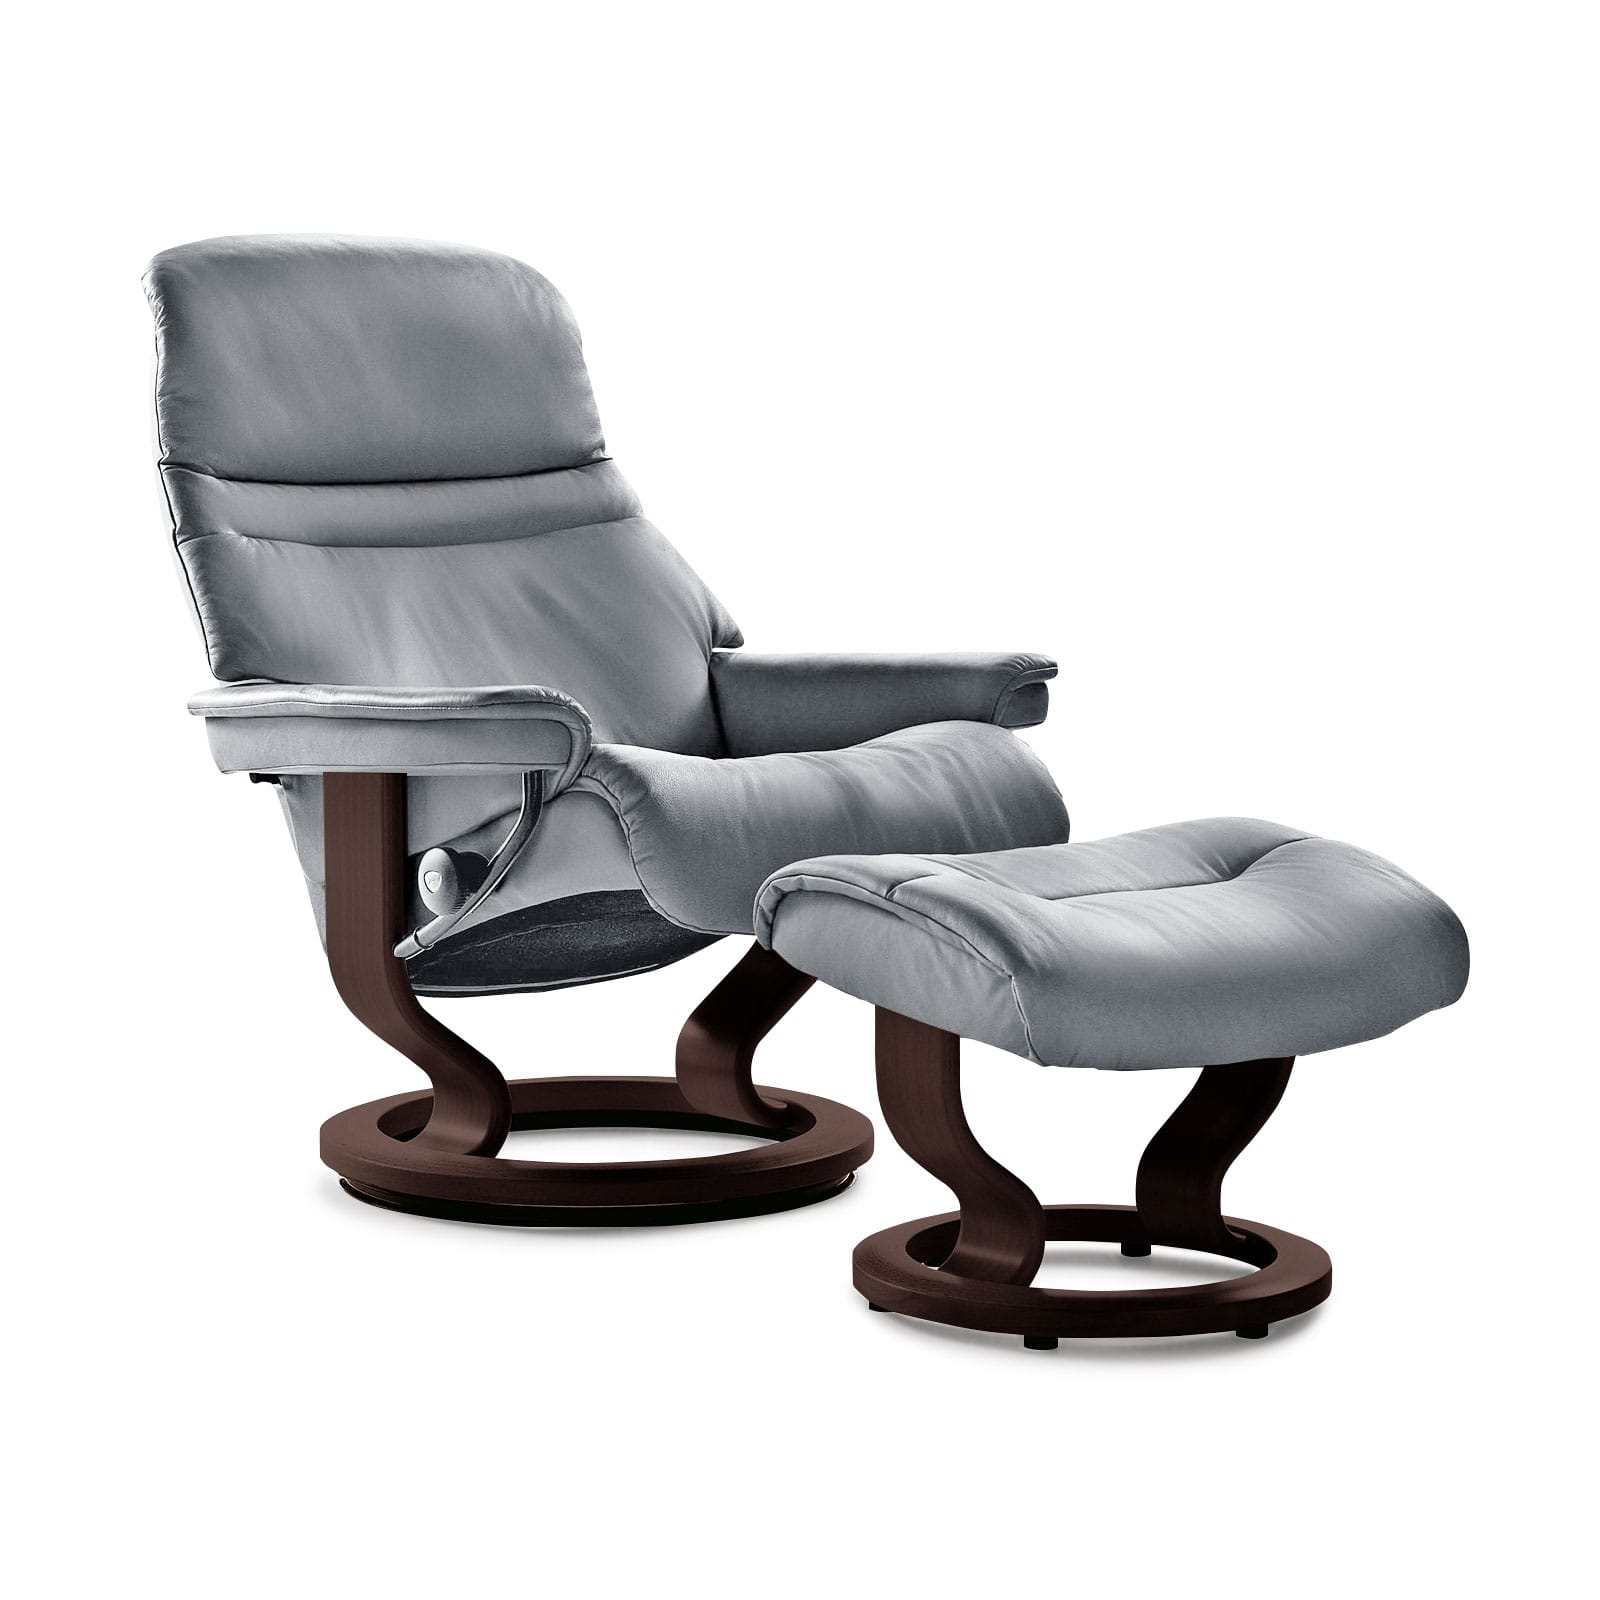 Relaxsessel Stressless Relaxsessel Stressless Sunrise Batick Grey Untergestell